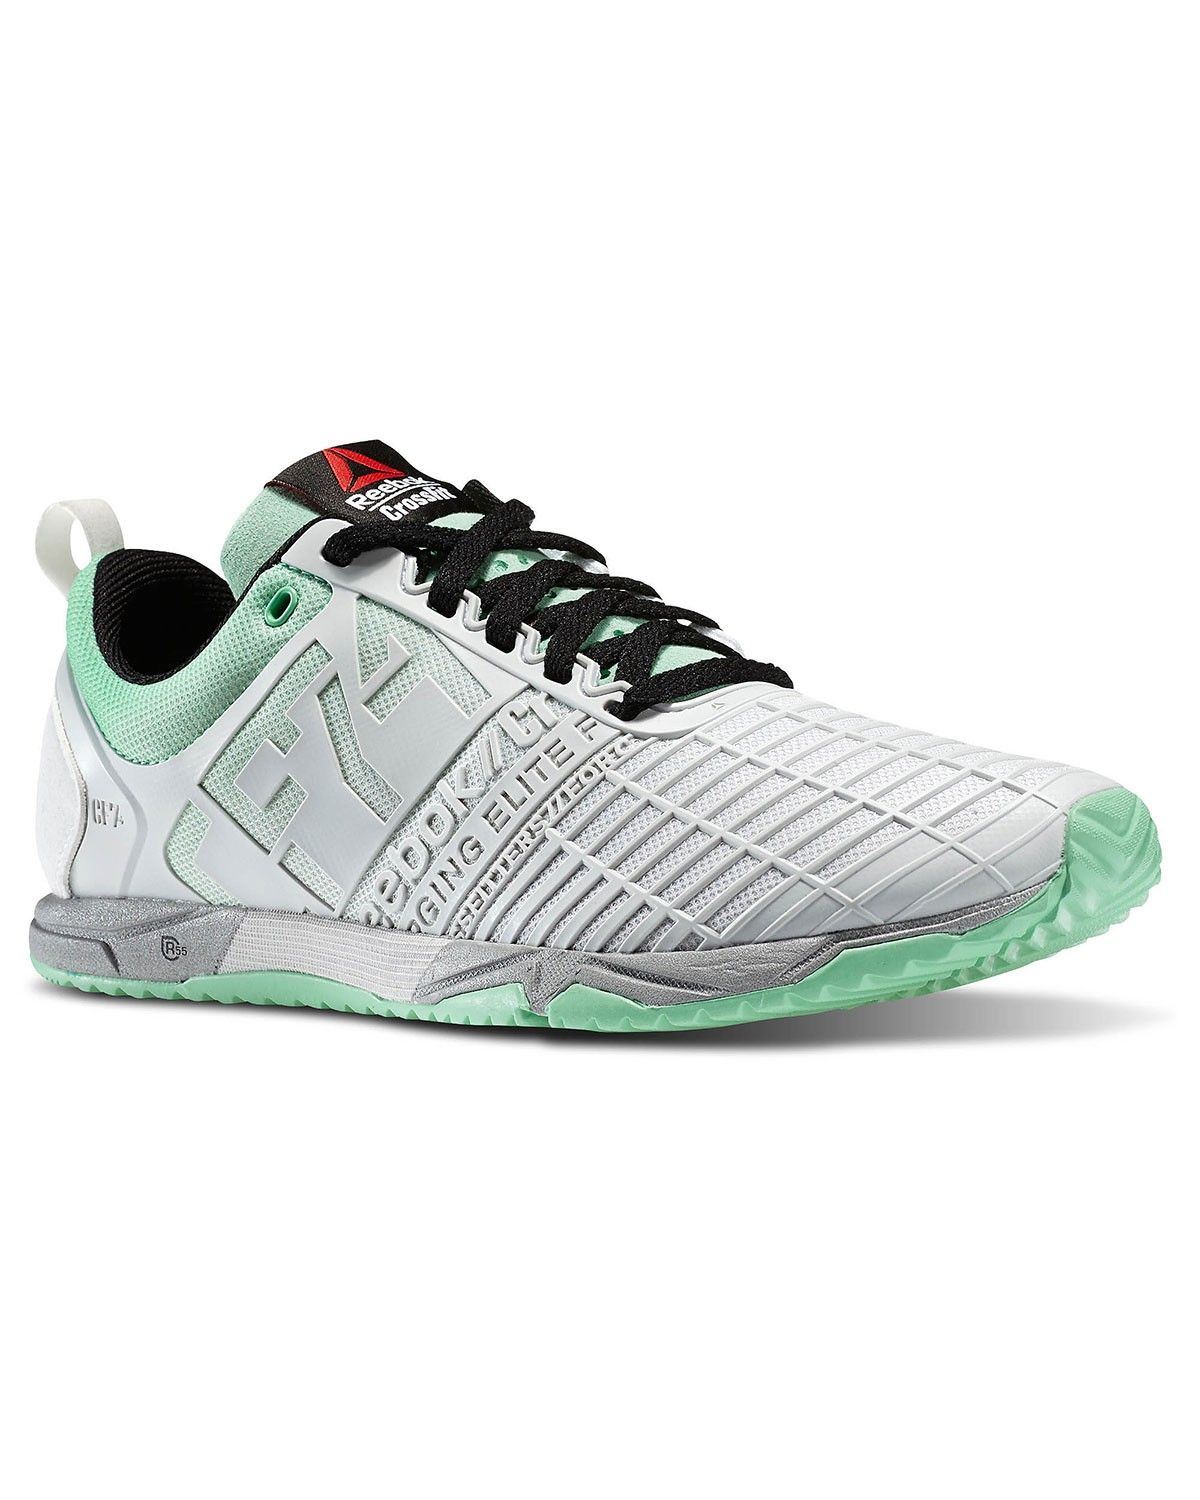 Reebok Womens Crossfit Athlete Select Pack Sprint Tr Training Sneaker in  Grey Porcelain / Mint Glow / Black / Silver Size